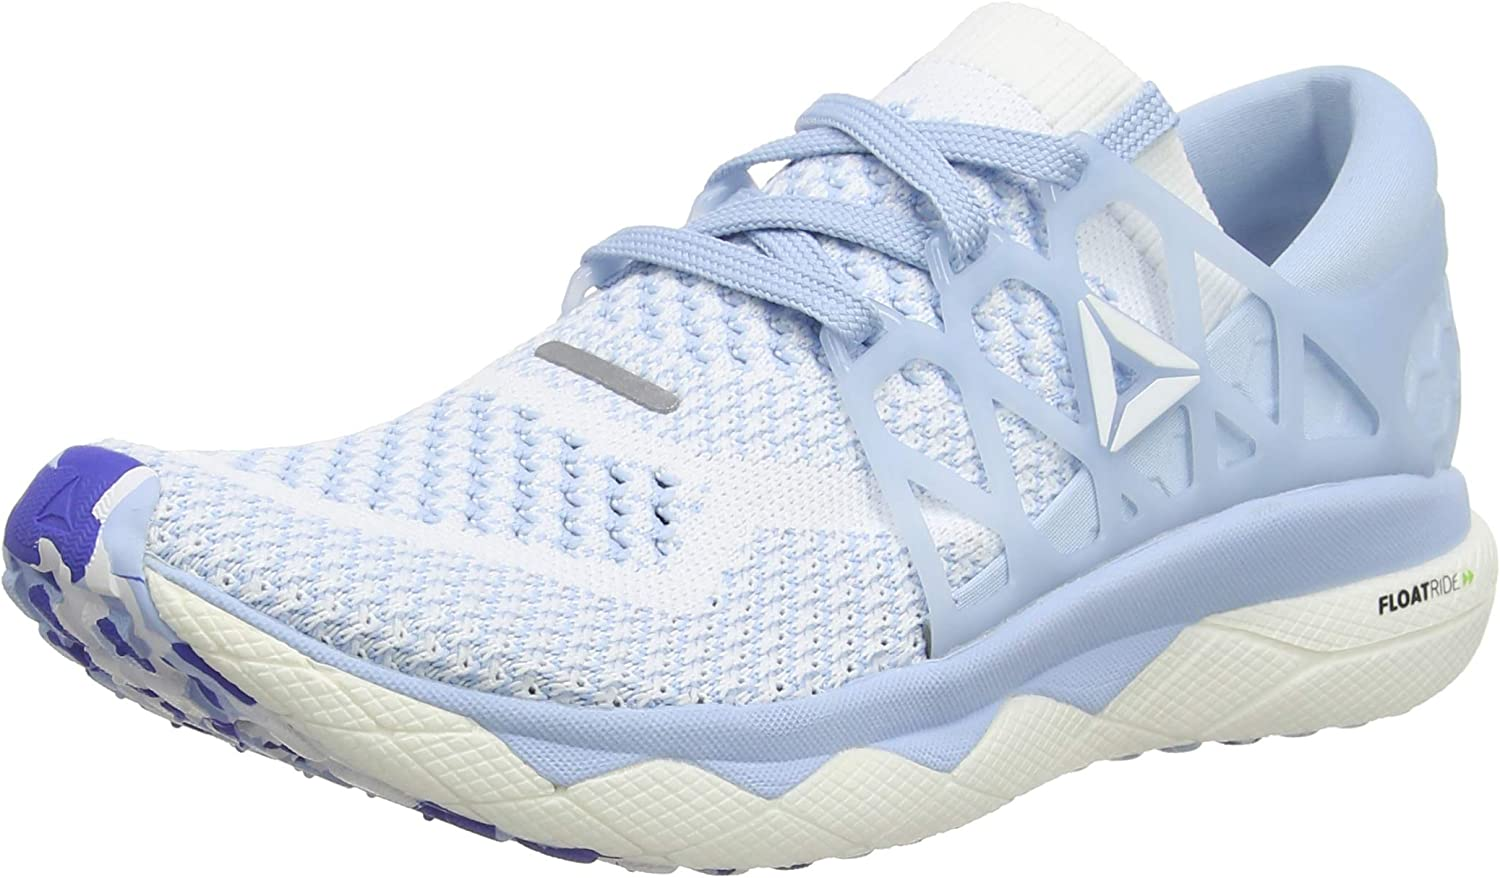 Reebok Floatride Run Ultk, Zapatillas de Trail Running para Mujer: Amazon.es: Zapatos y complementos